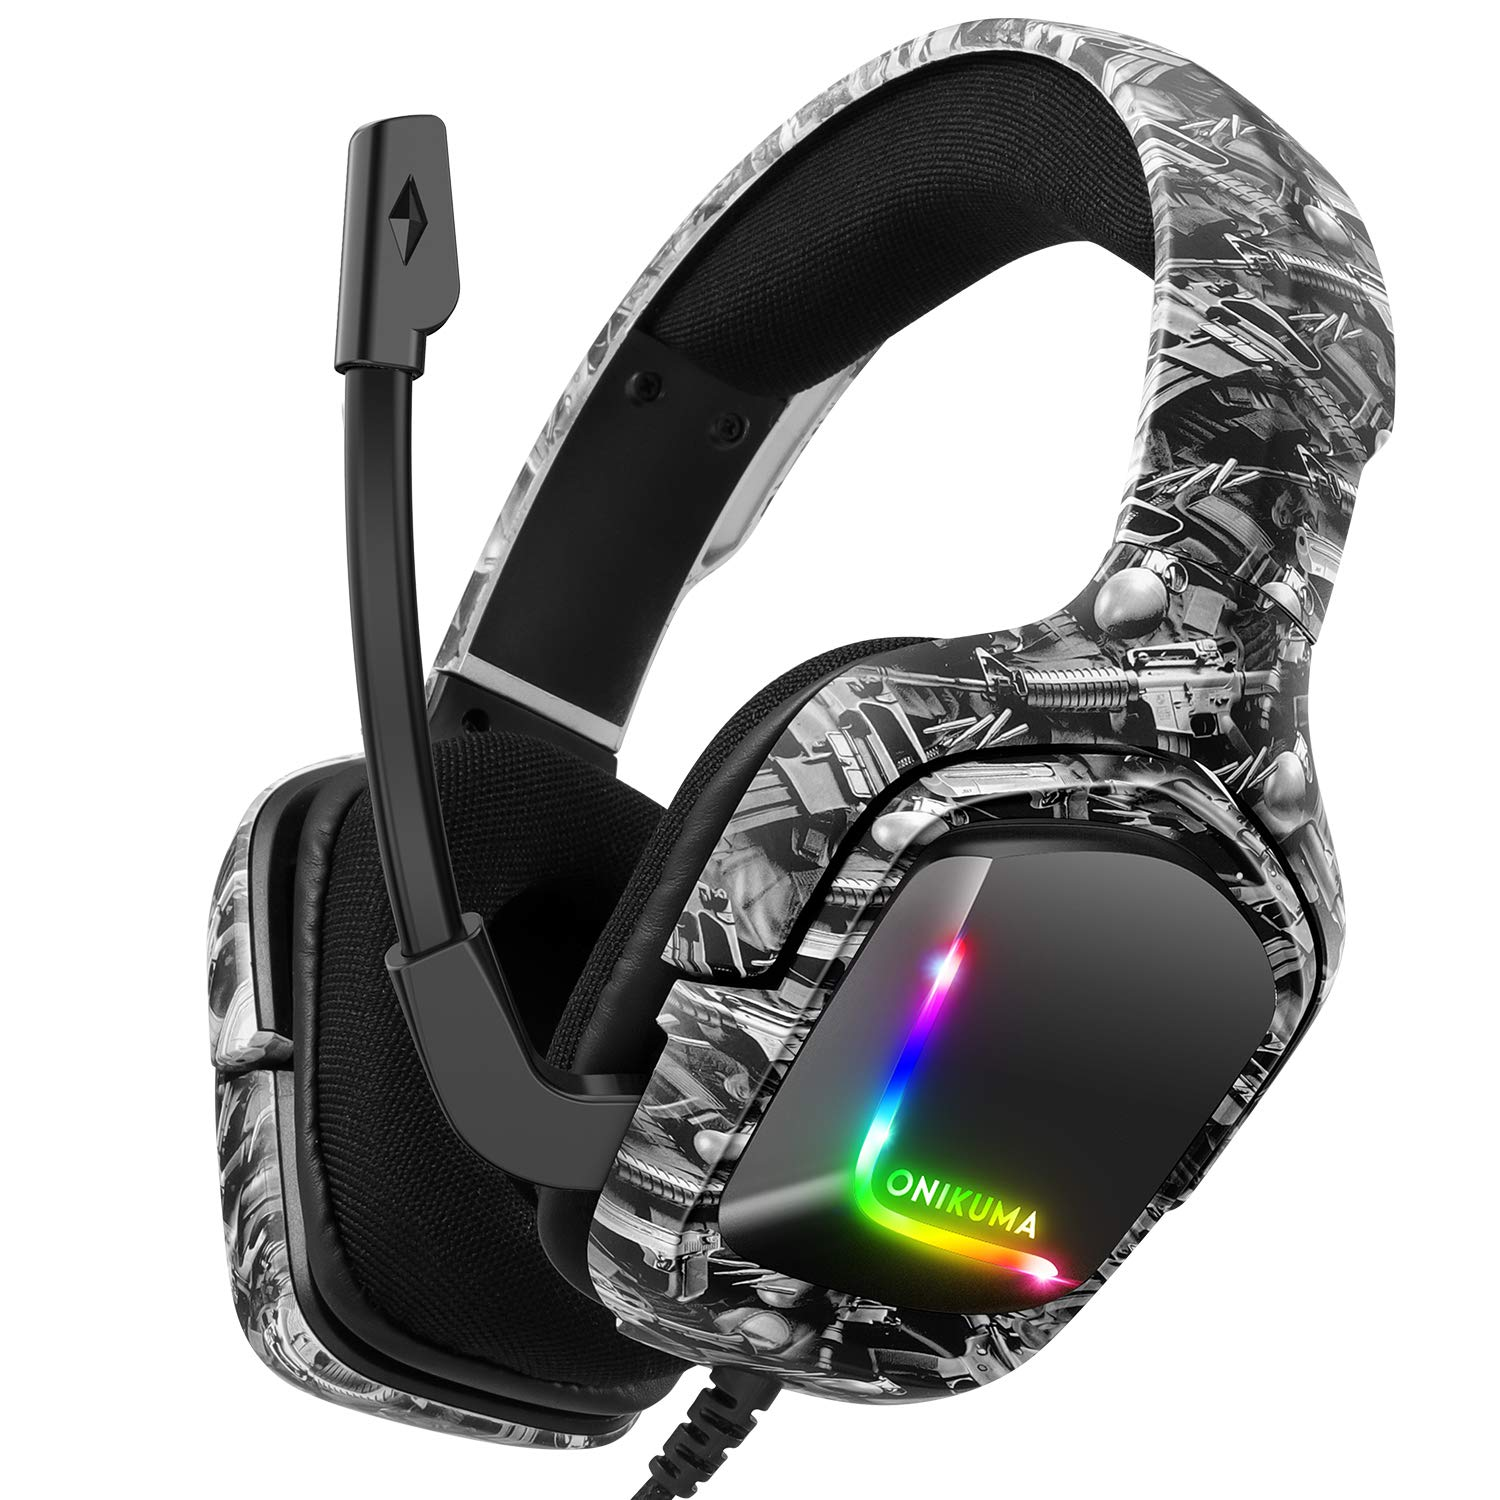 Best Gaming Headset for PC/Laptop